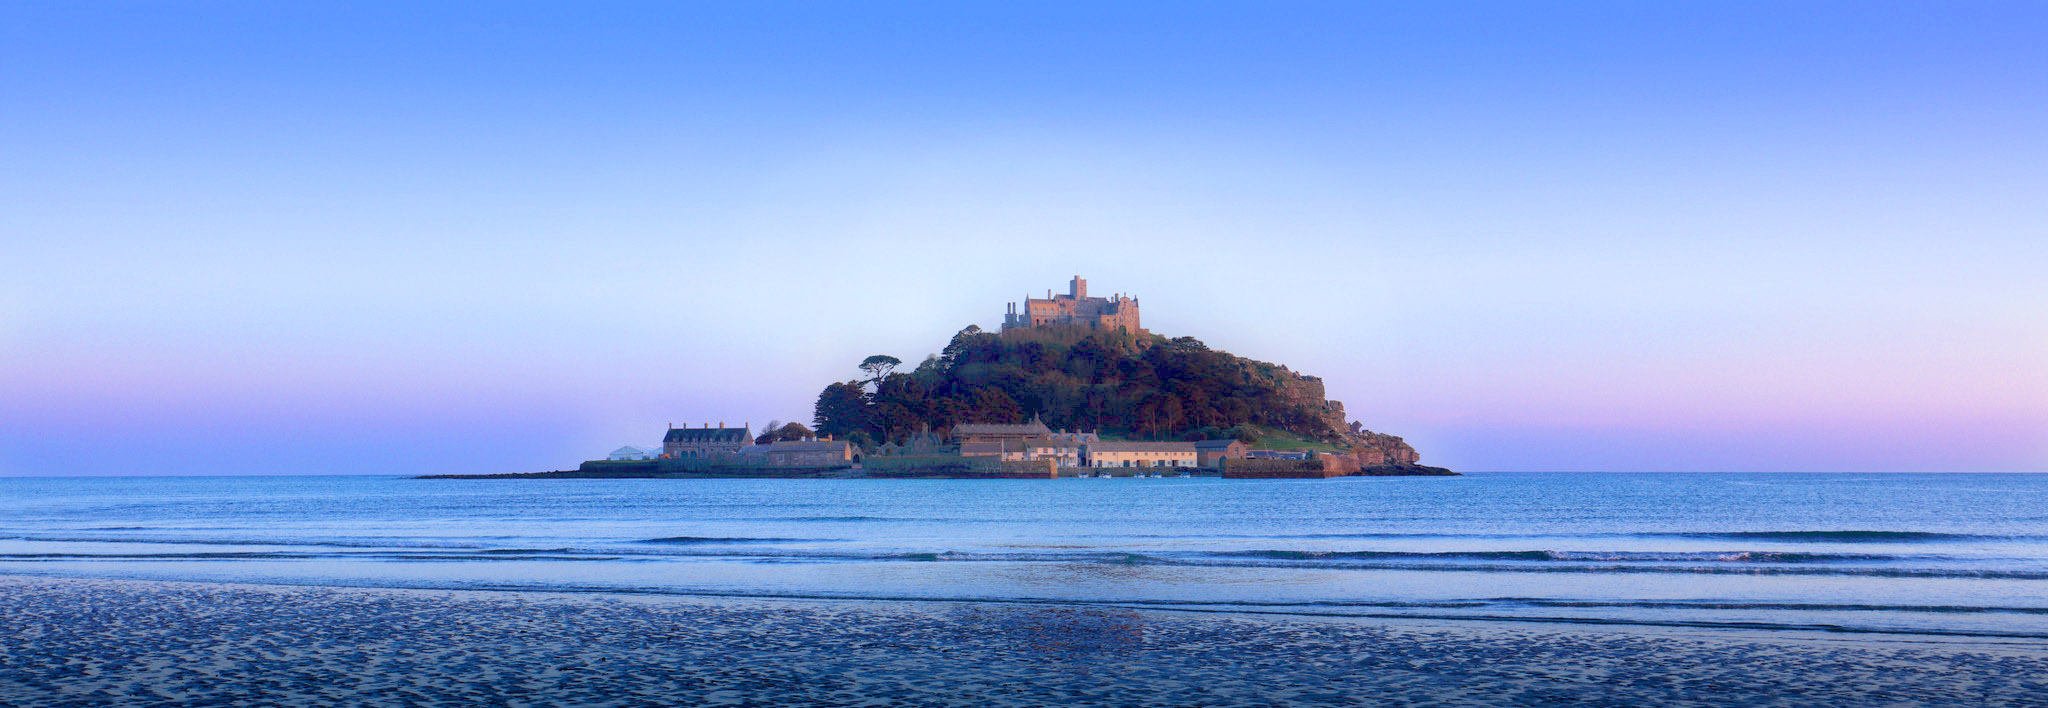 St Michaels Mount by Michael D Beckwith.jpg